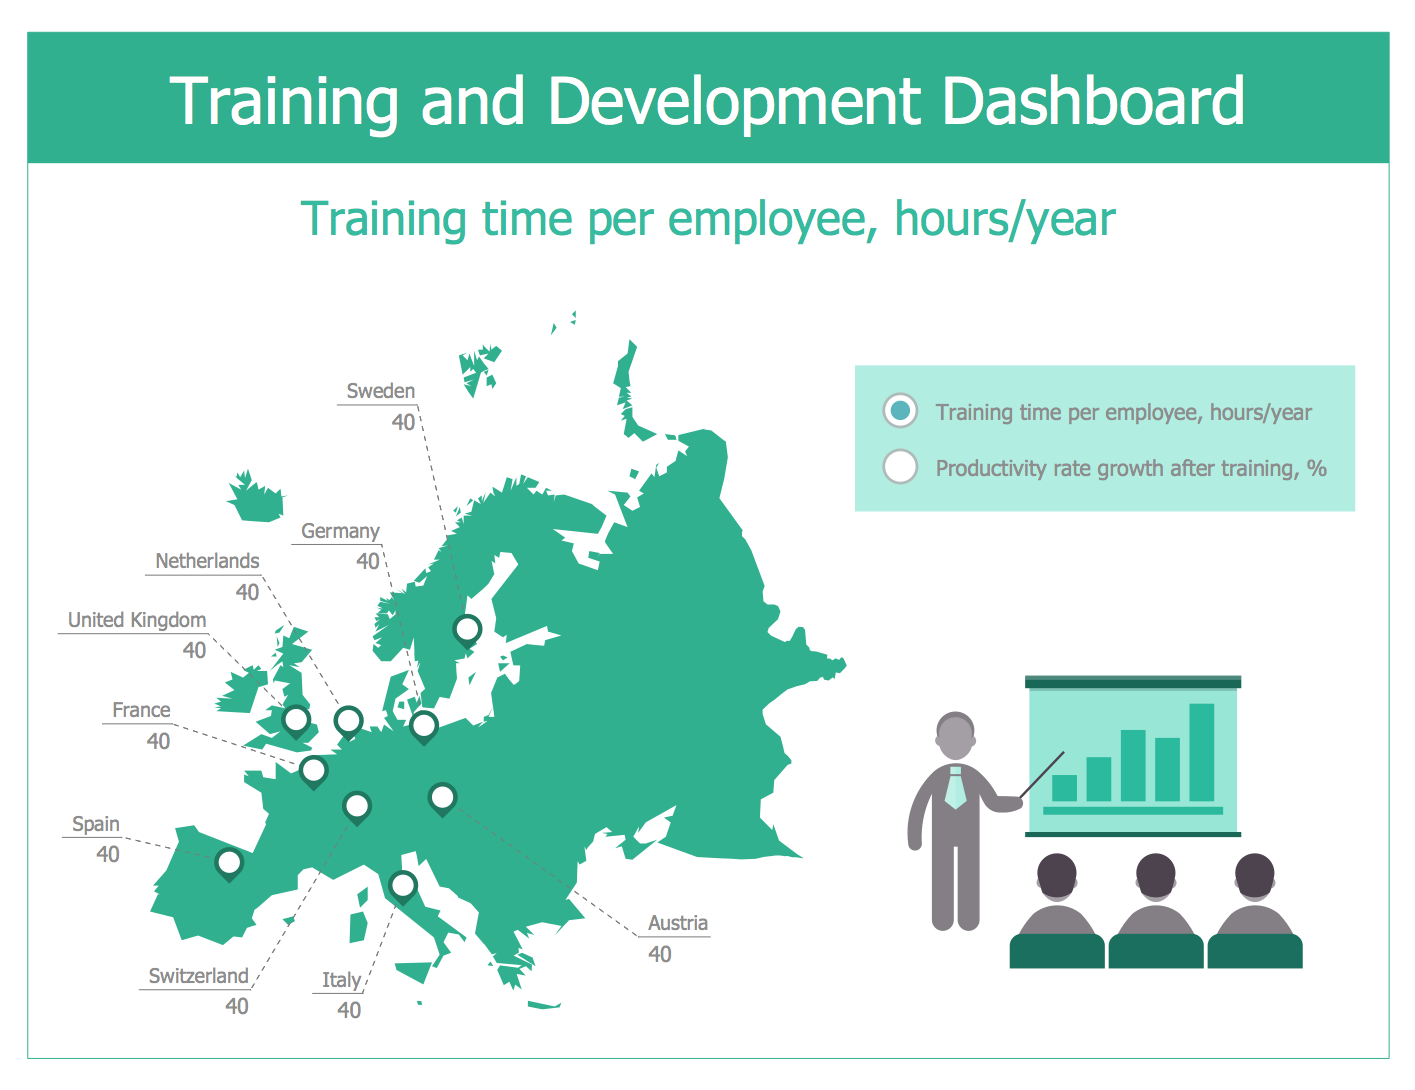 Training and Development Dashboard Template